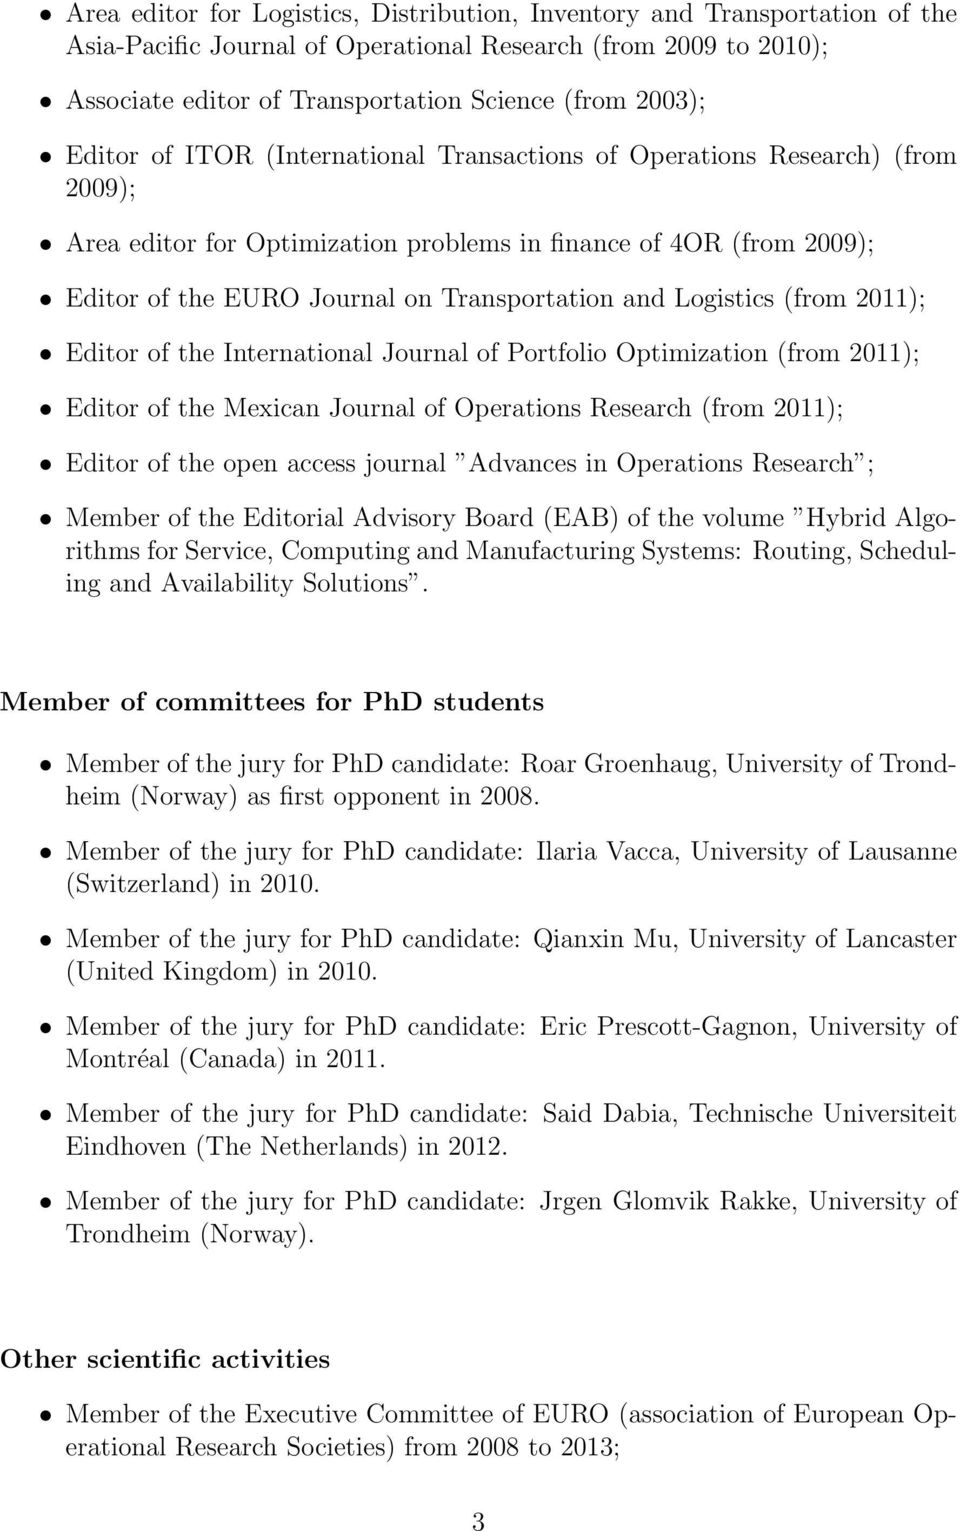 Logistics (from 2011); Editor of the International Journal of Portfolio Optimization (from 2011); Editor of the Mexican Journal of Operations Research (from 2011); Editor of the open access journal